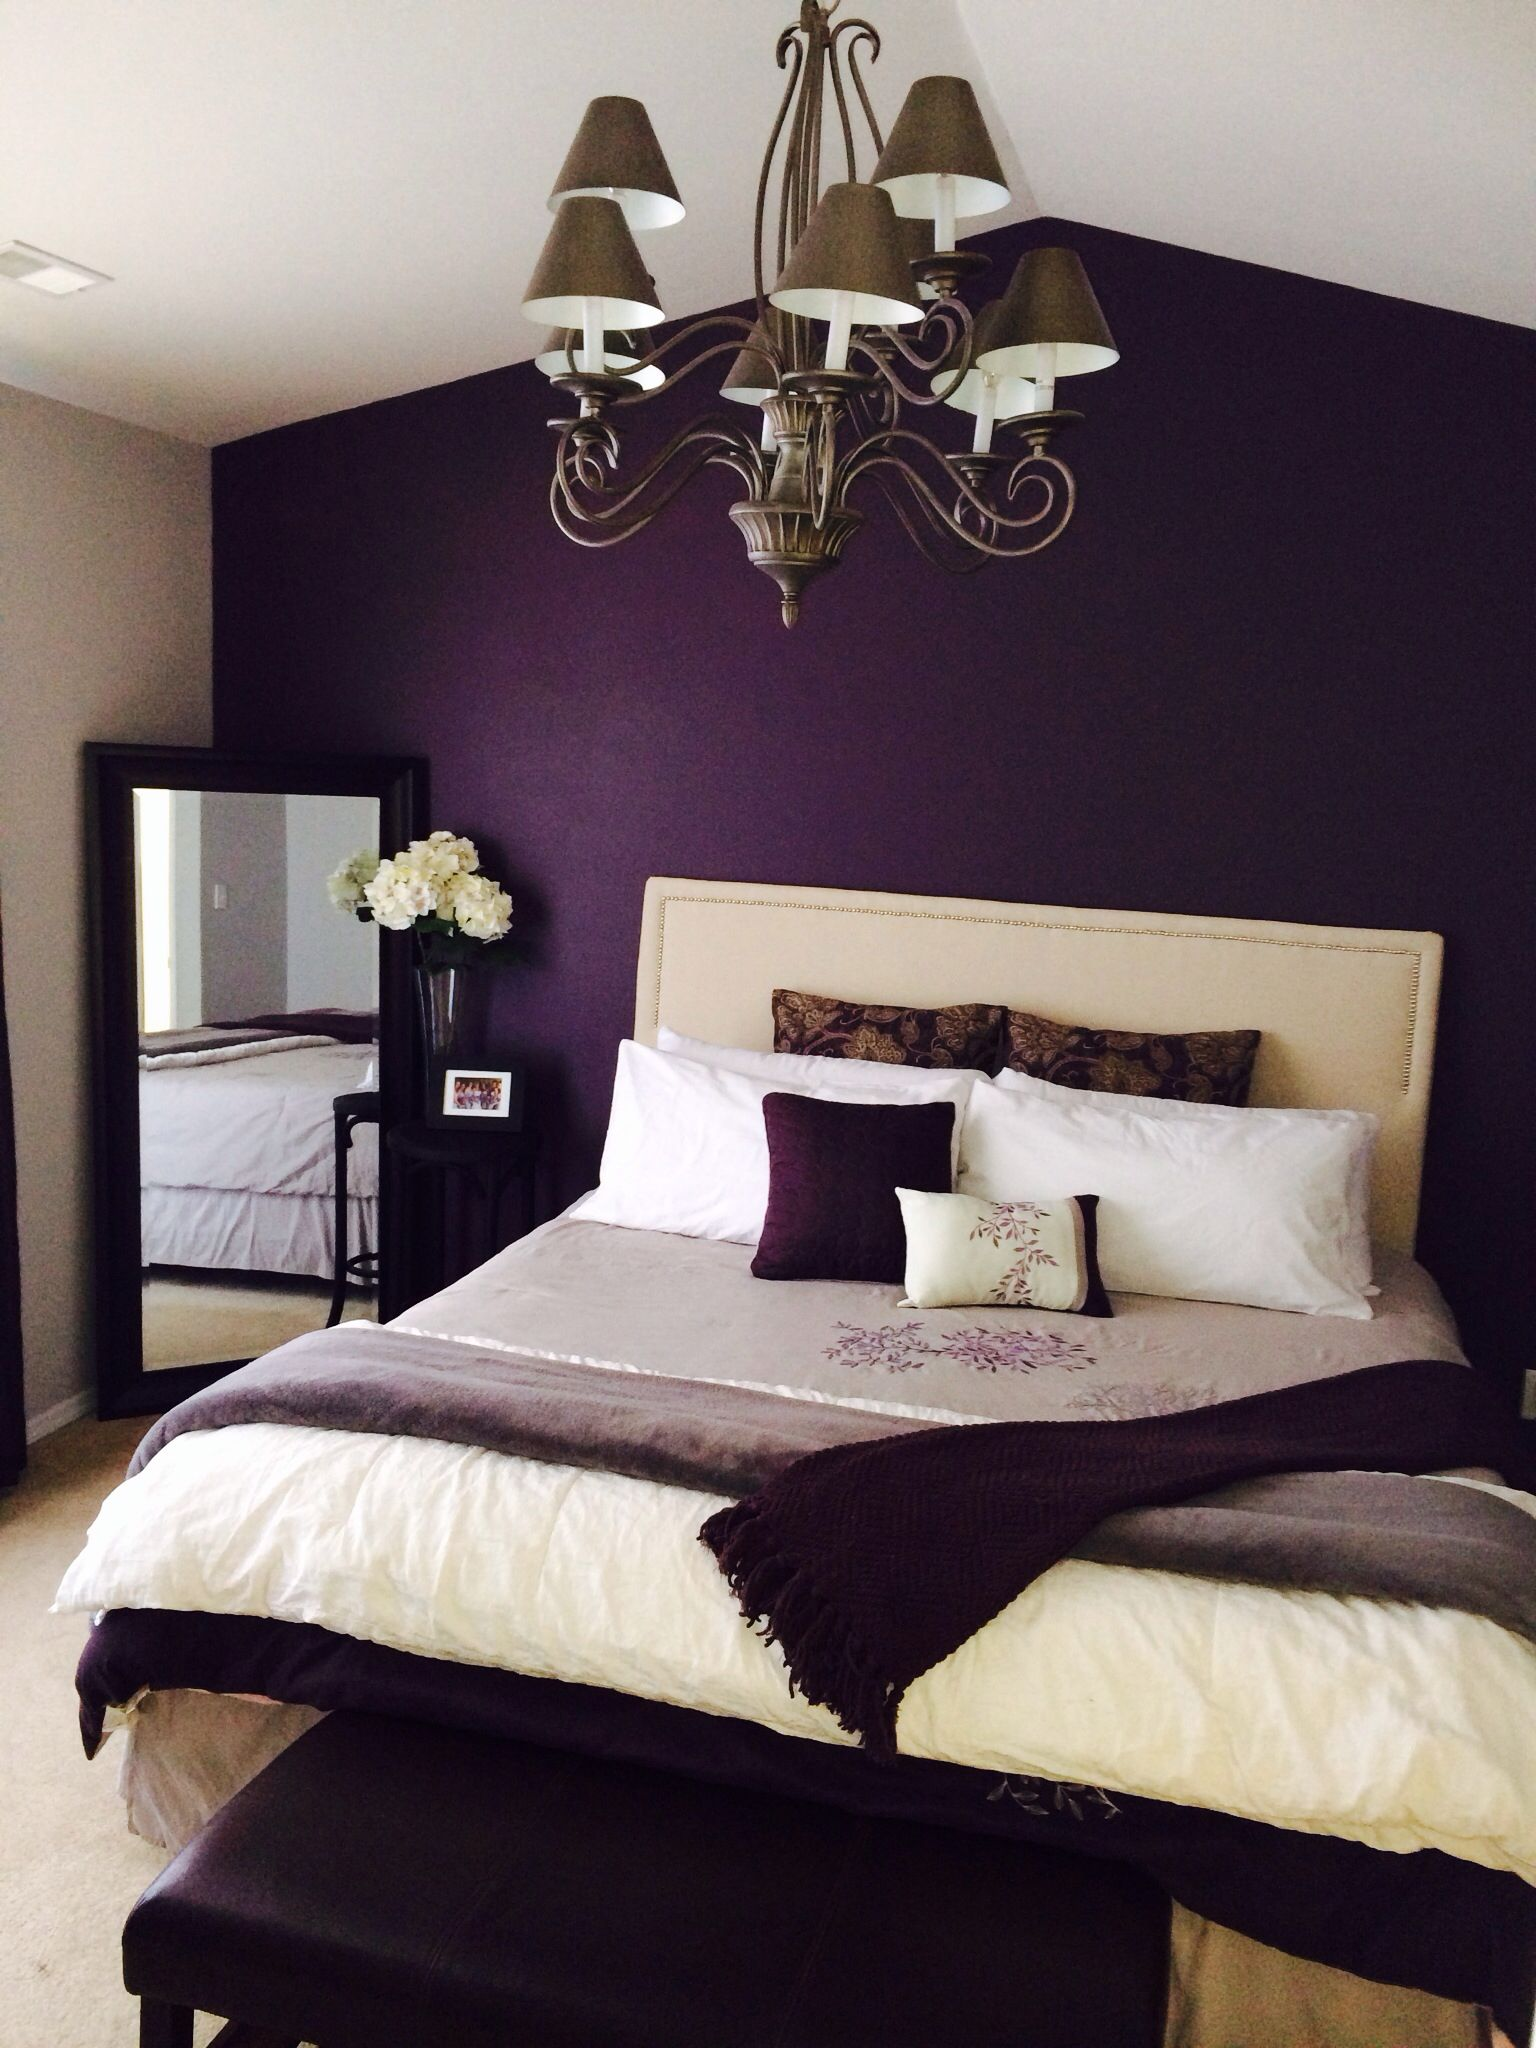 Romantic Bedroom Design & Decor by Kelly Ann | Kelly Ann Designs in ...